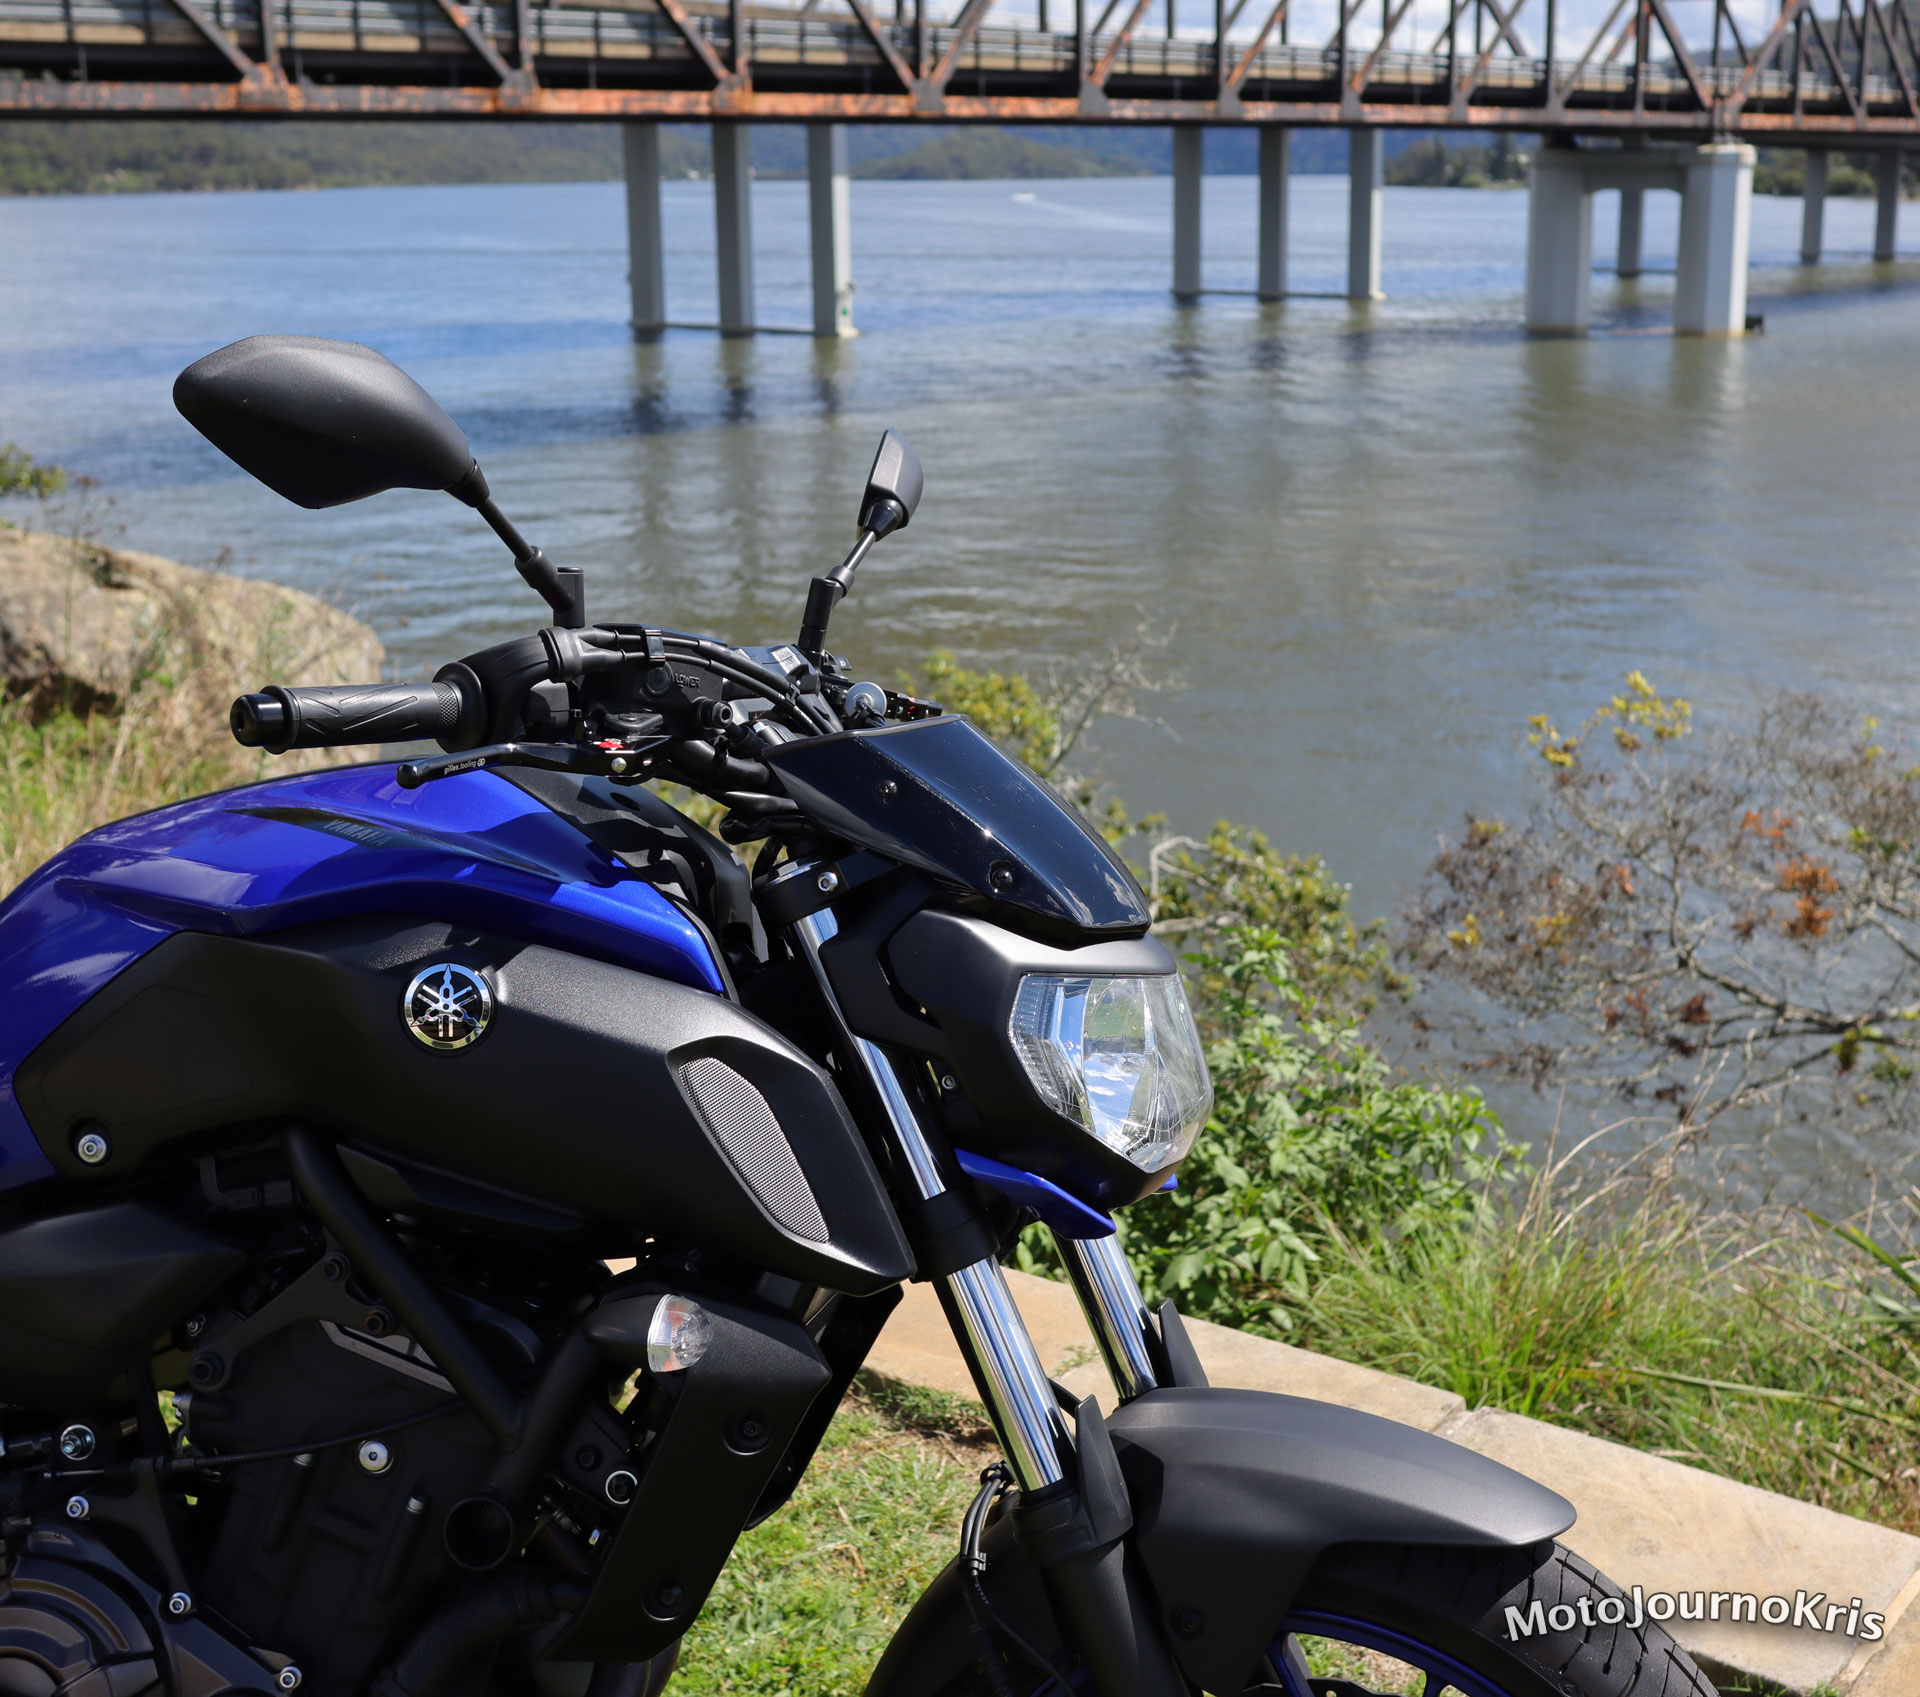 Yamaha MT-07 with screen installed